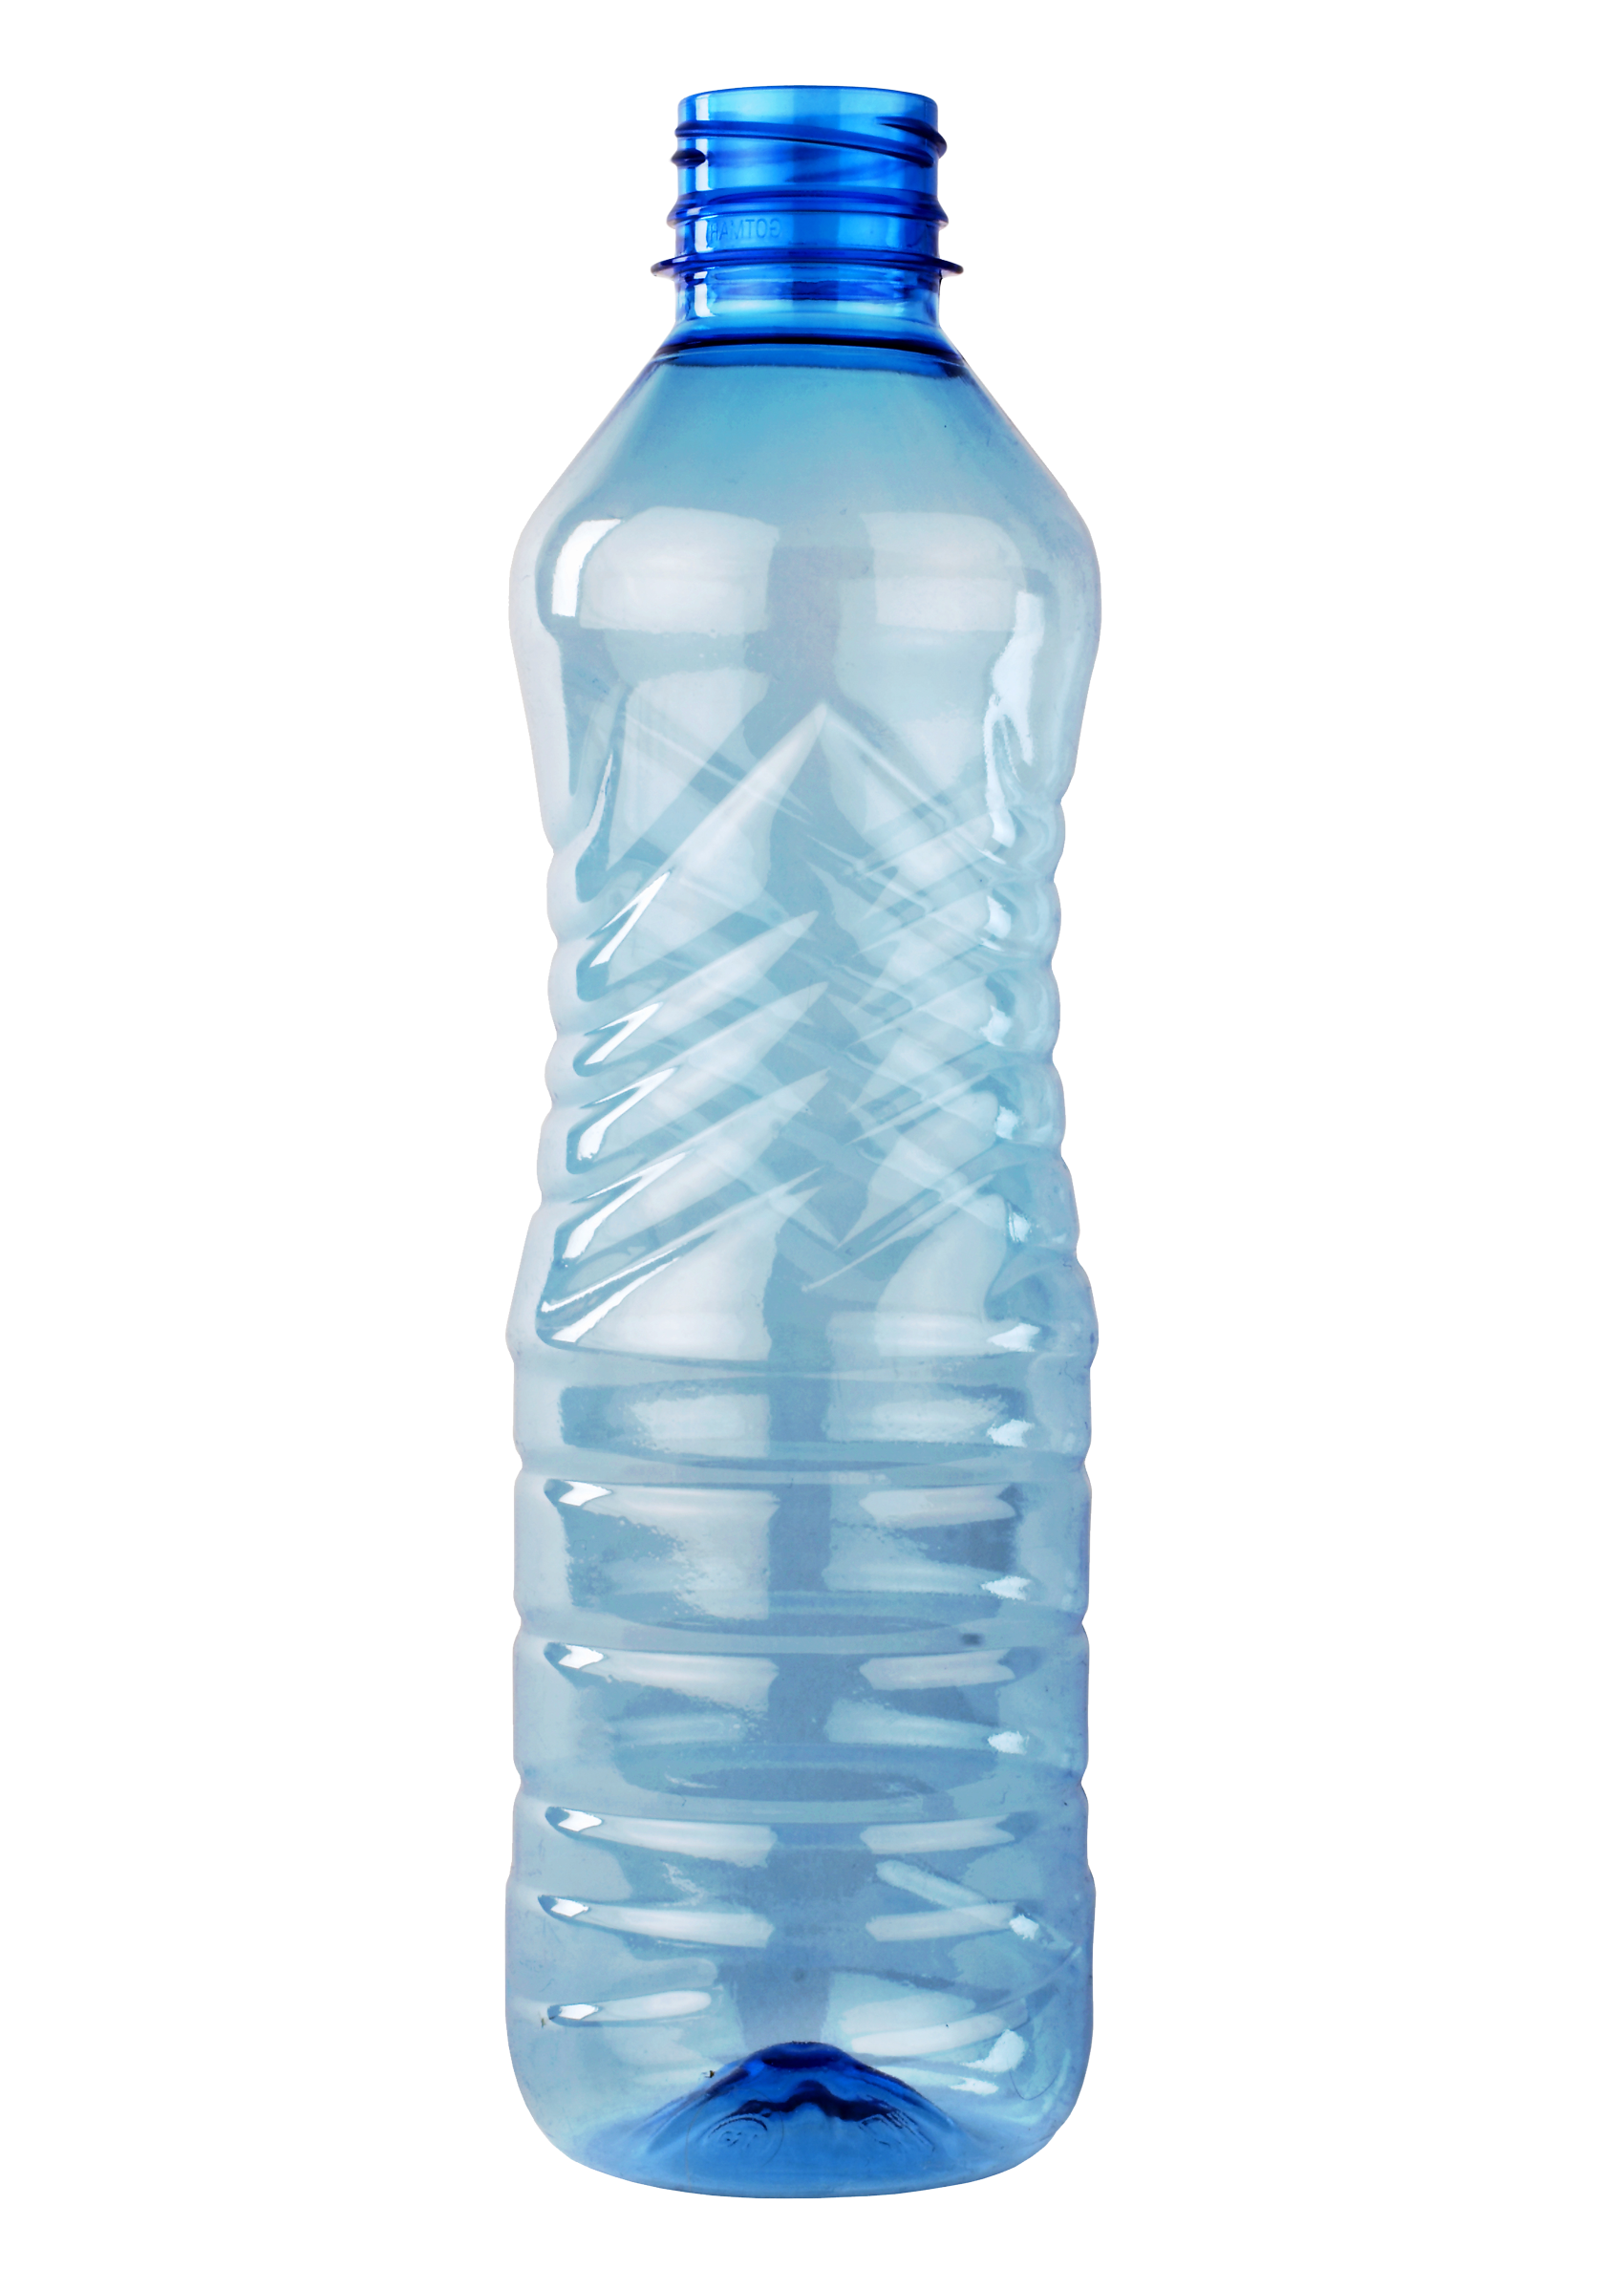 Water Bottle Png image #39990 - Bottle PNG